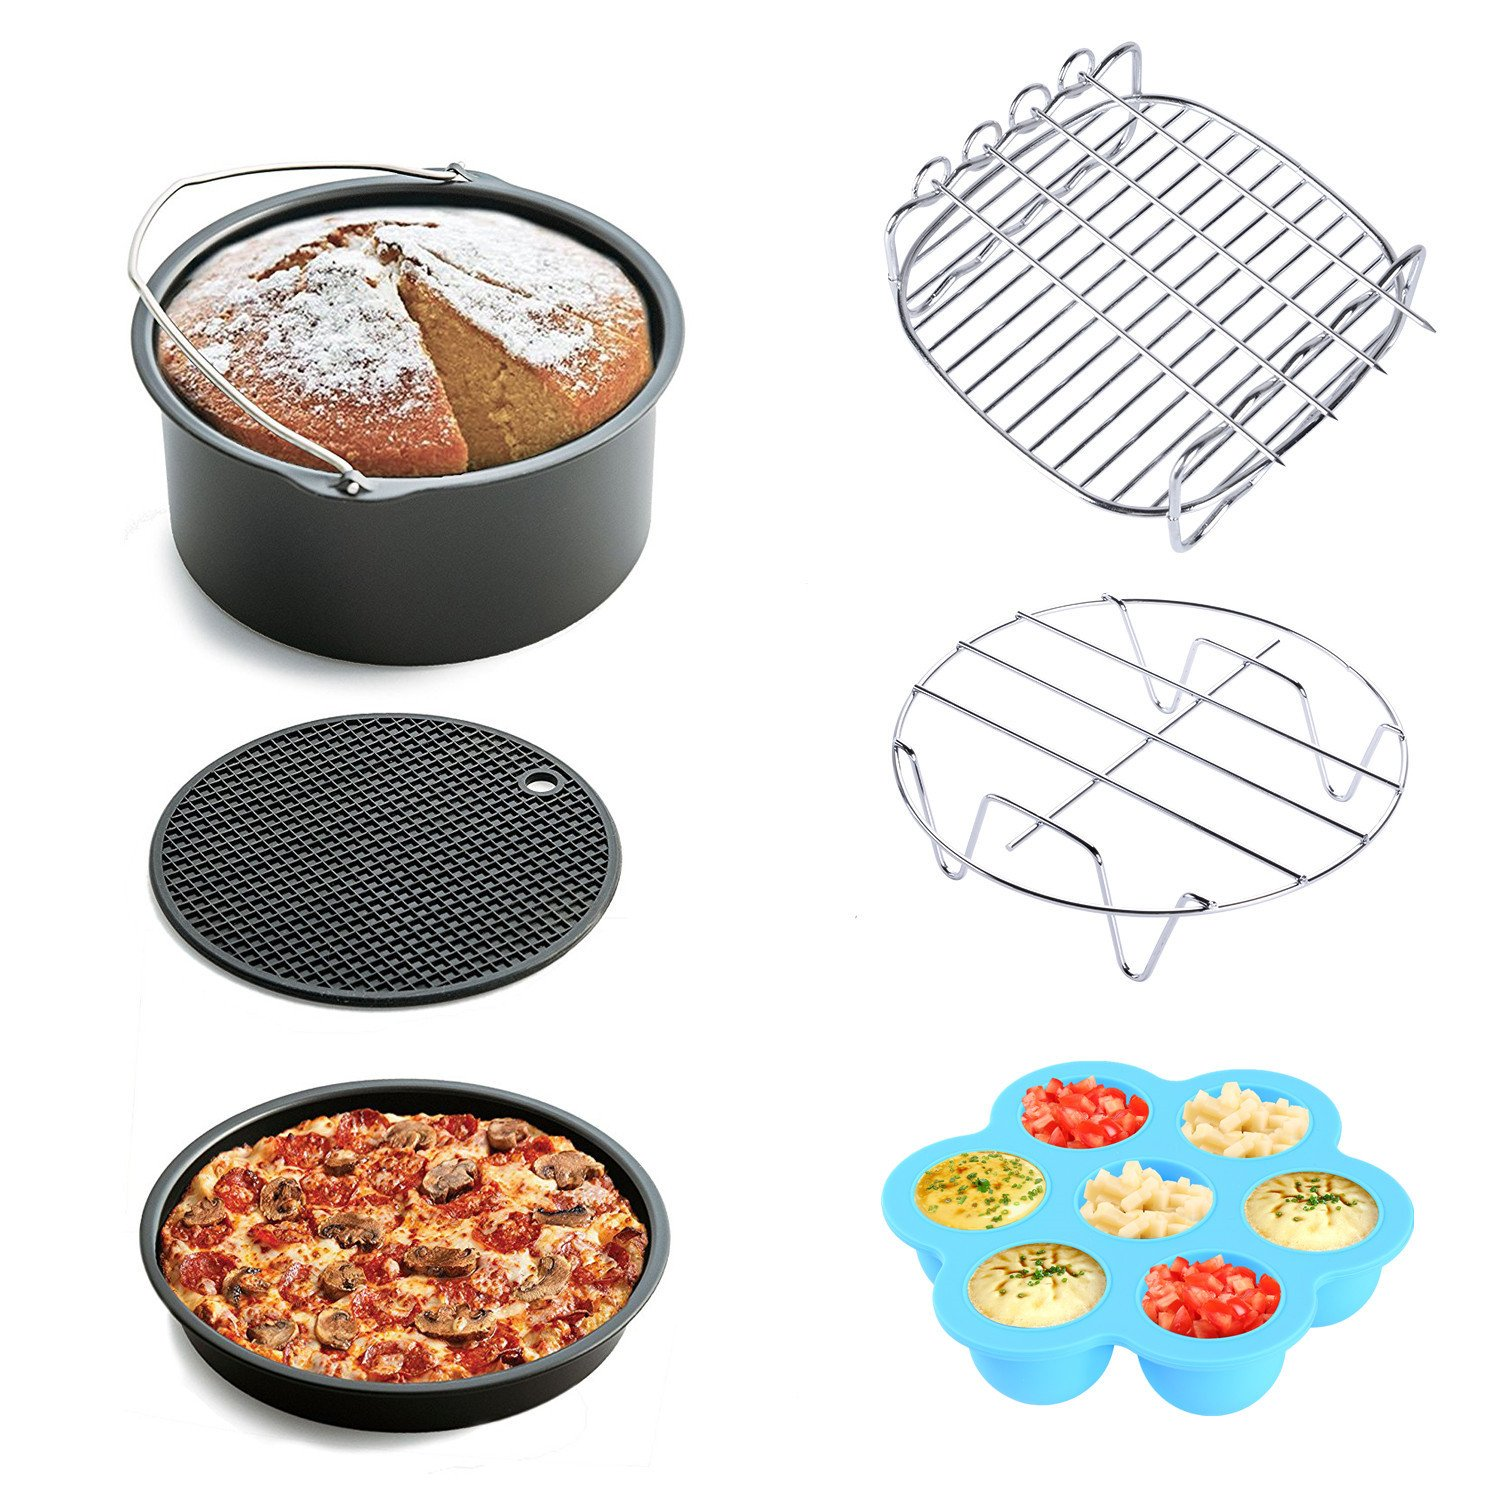 Air Fryer Accessories 6pcs for Gowise Phillips and Cozyna, fit all 3.7QT - 5.3QT with 7 Inch Diameter by KINDEN by KINDEN